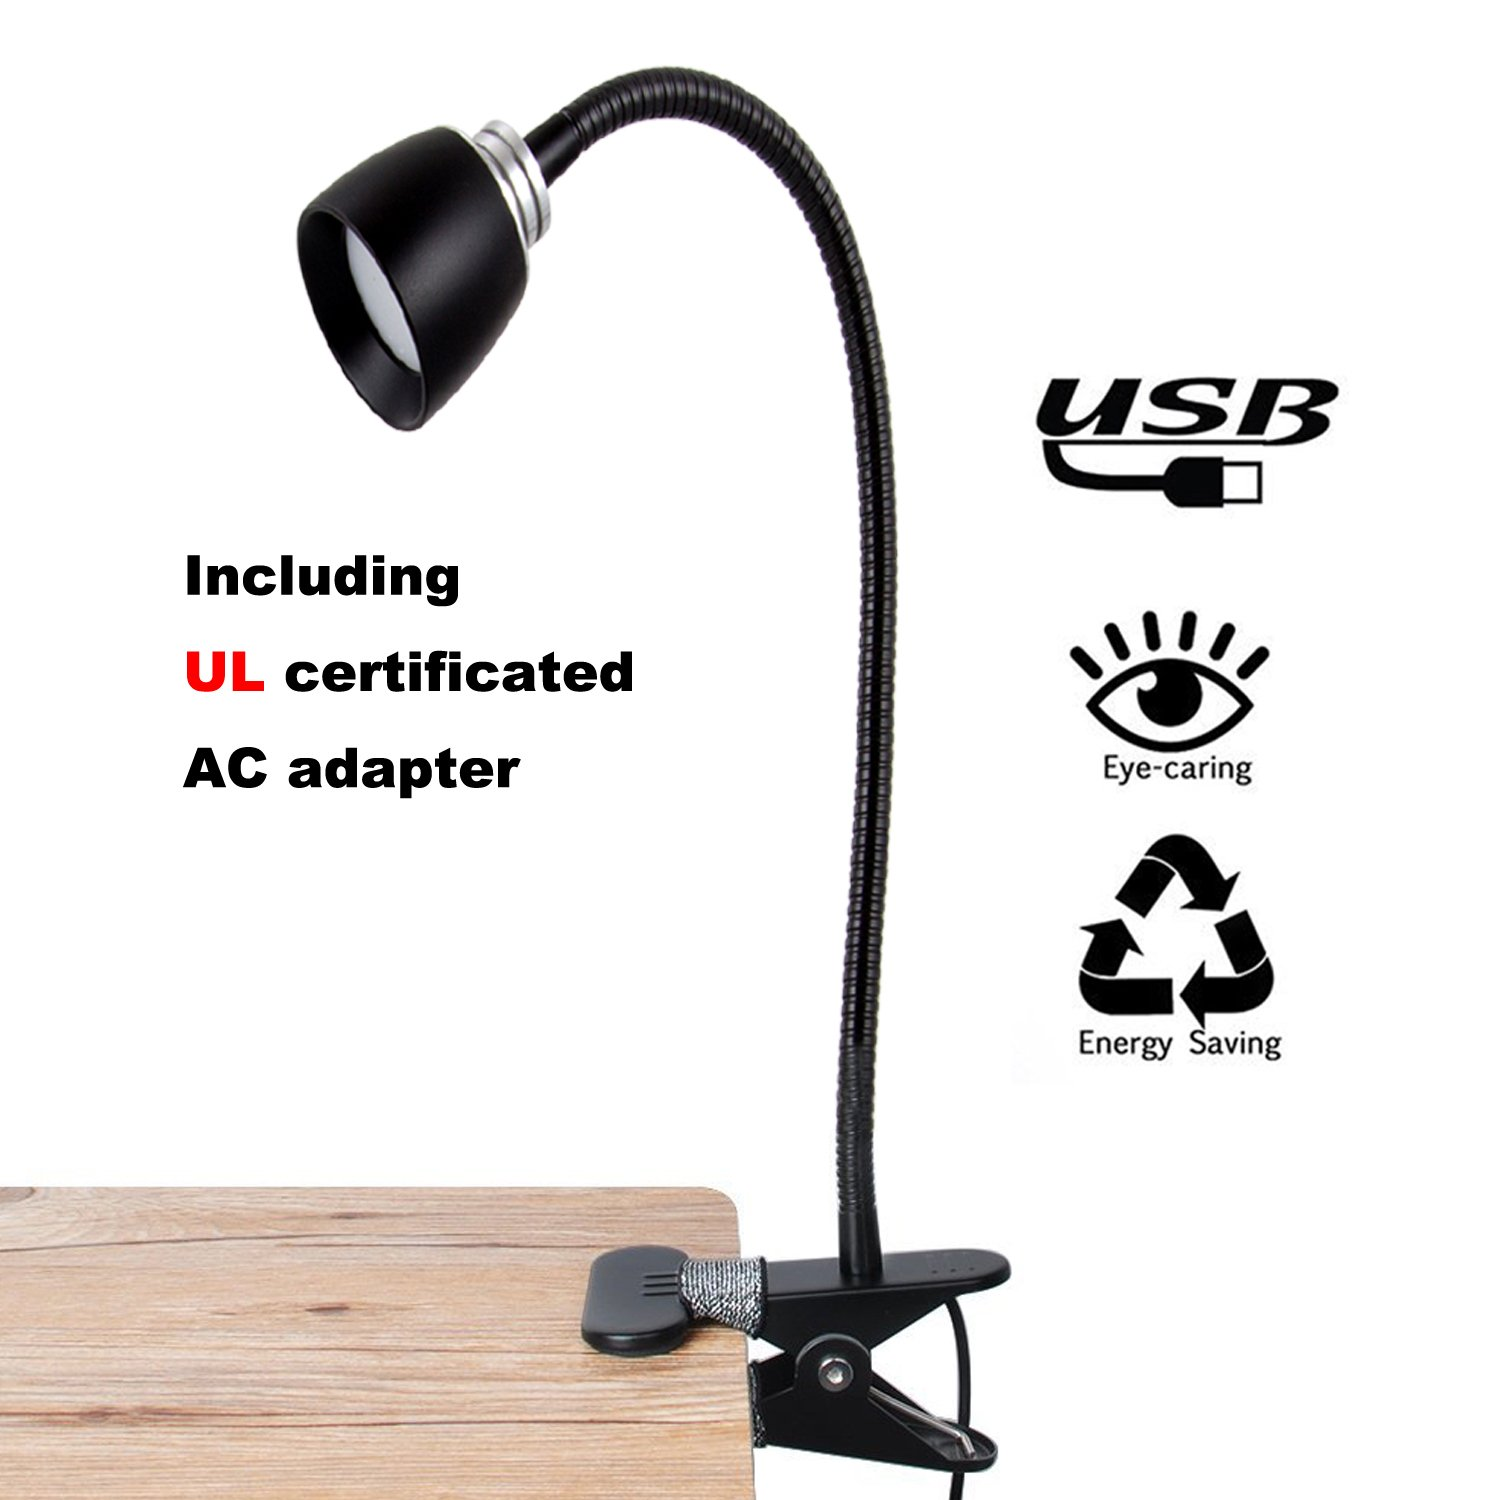 FOCUSAIRY Reading Light Lamp, Night Book Light, Energy-Efficient 3W LED Table Desk Lamp, 2 Brightness Levels Clip On for Desk Bed Headboard and Computers with USB Cable & AC Adapter (Black)